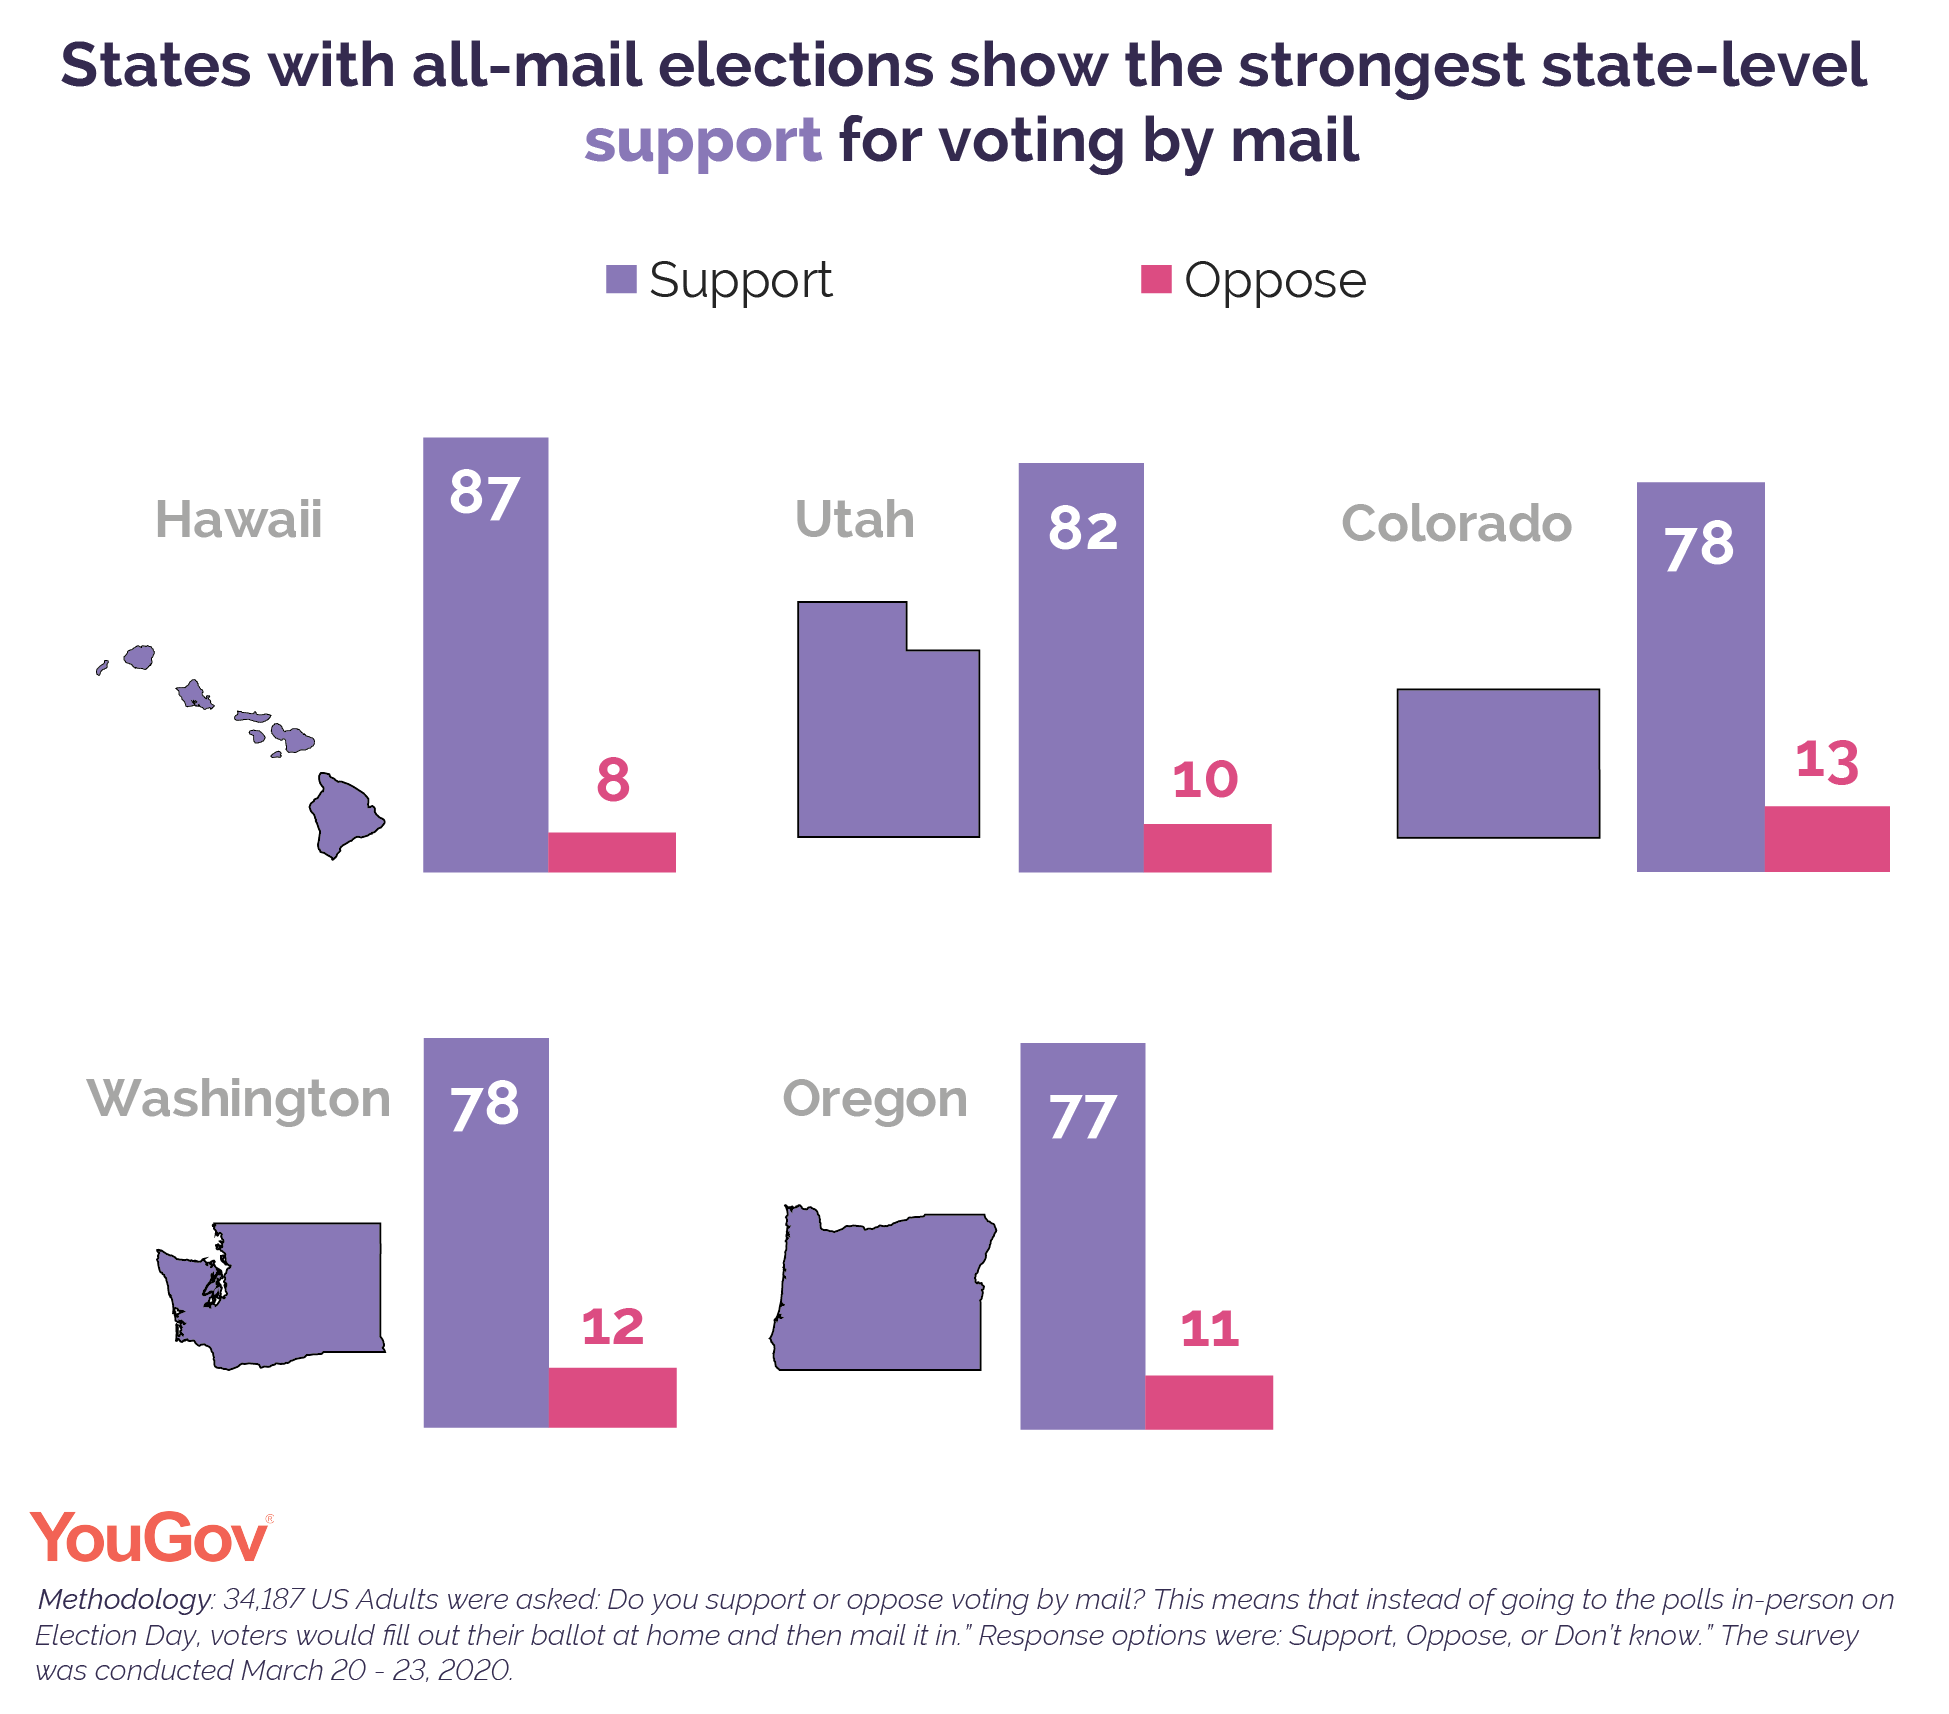 States with all-mail elections show the strongest state-level support for voting by mail